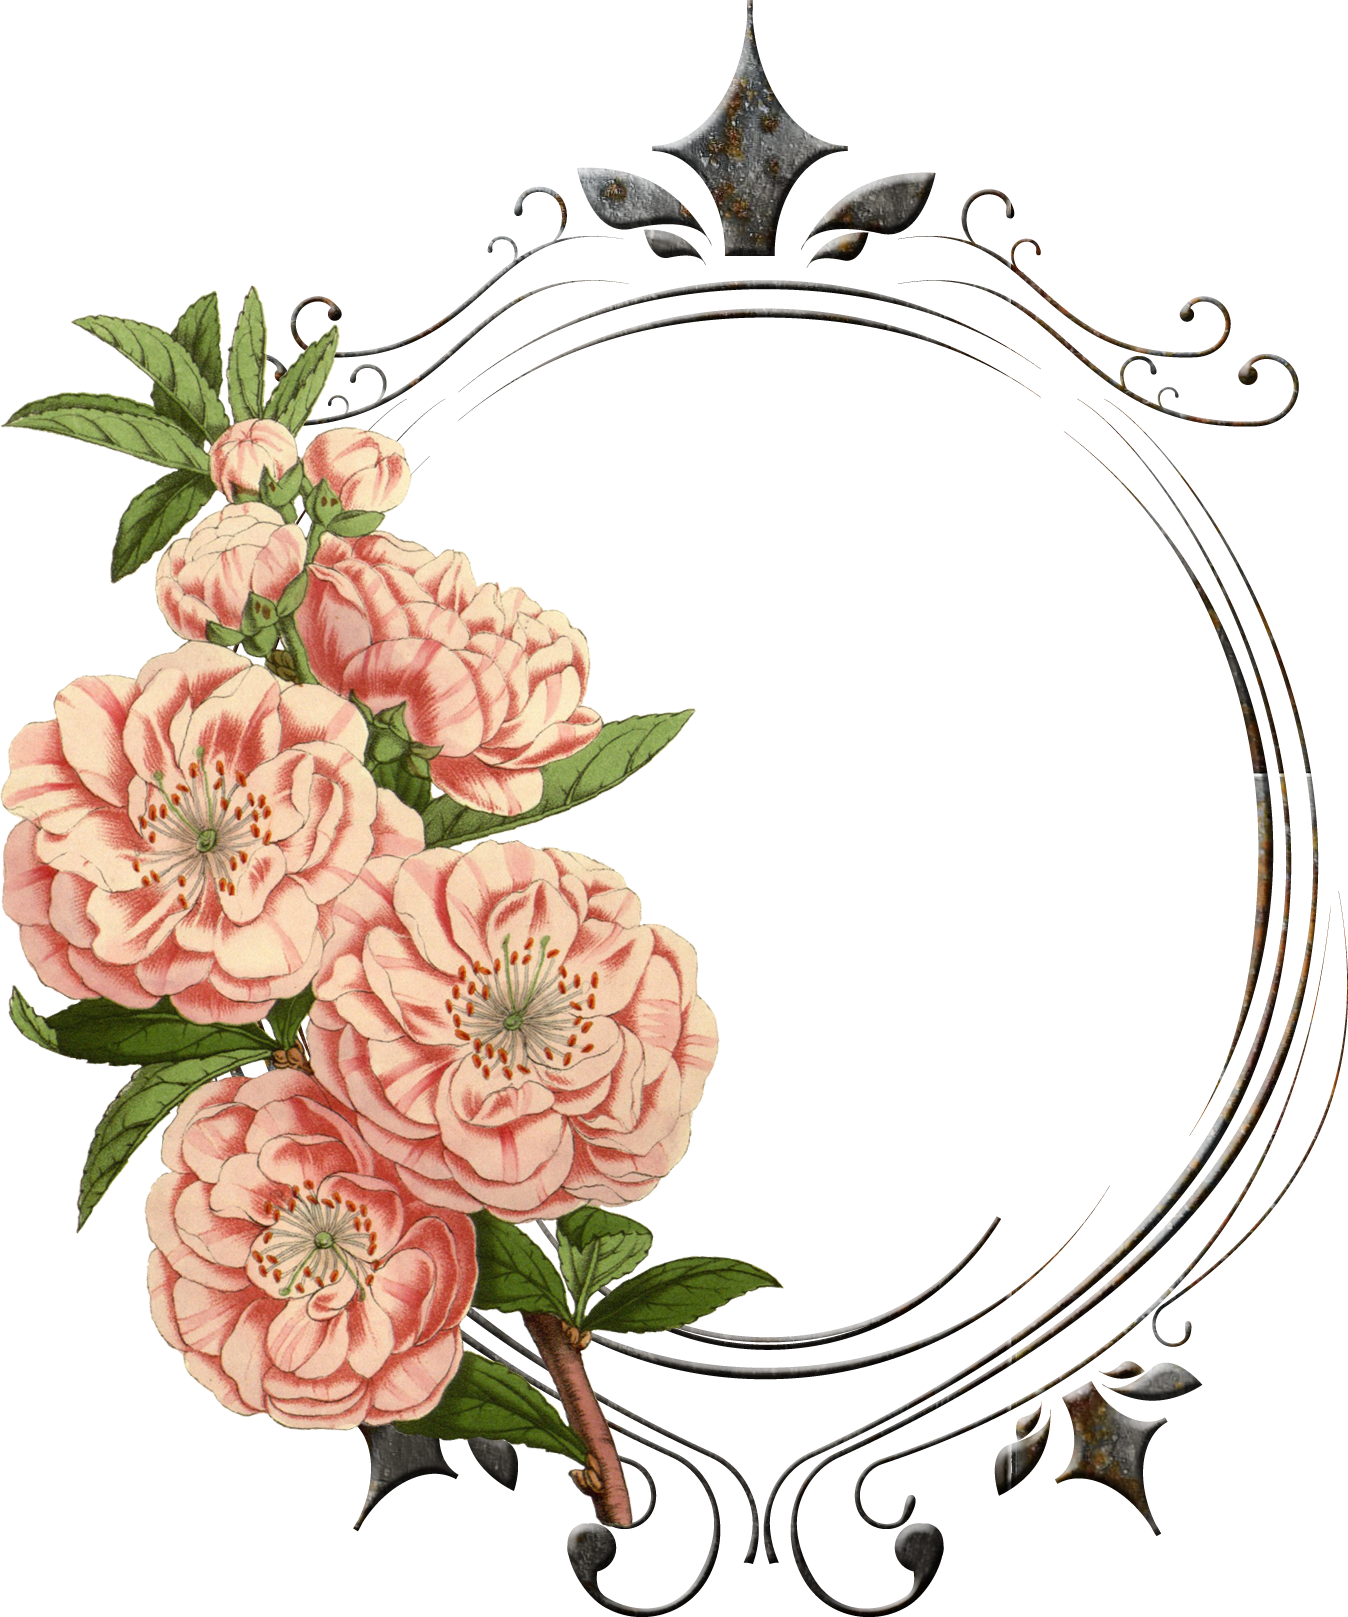 Free vintage flower clipart vector vintage flower png - Поиск в Google | Background | Pinterest ... vector